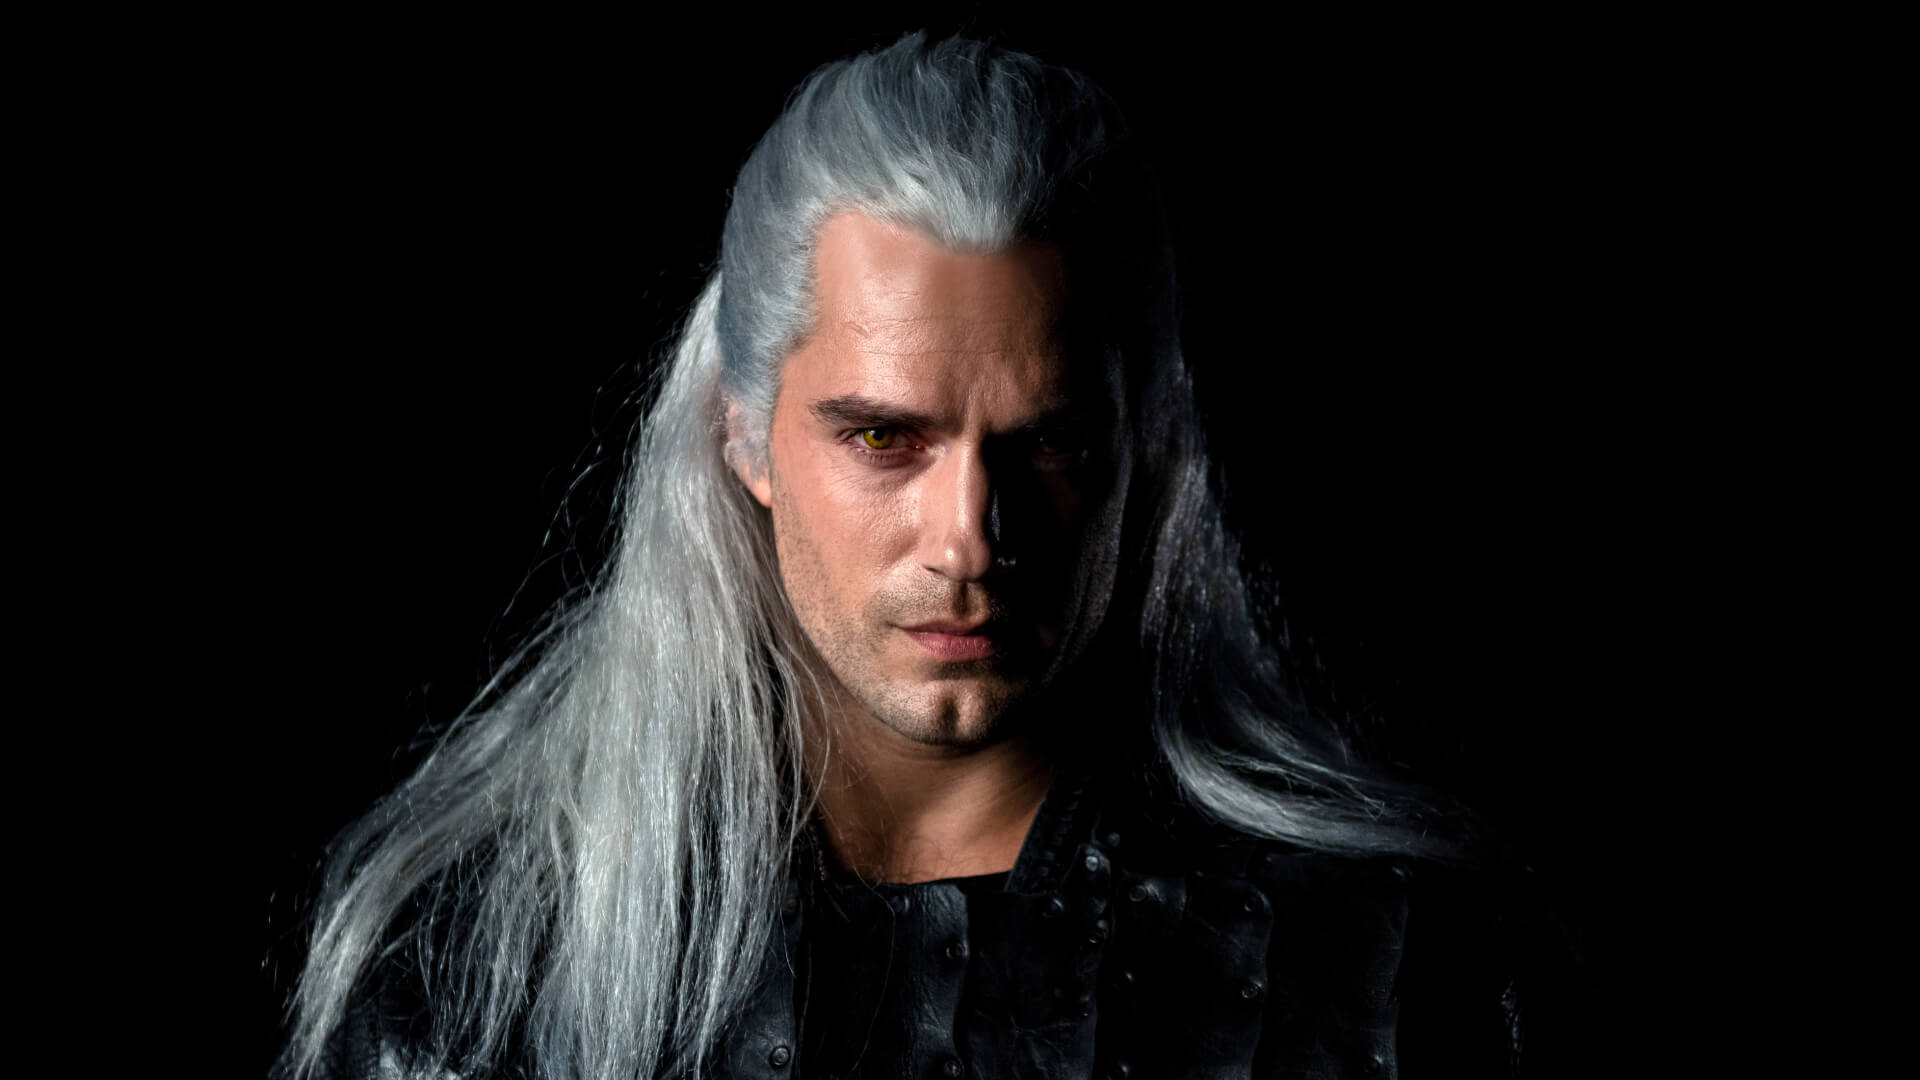 The Witcher's Final Trailer Has Released